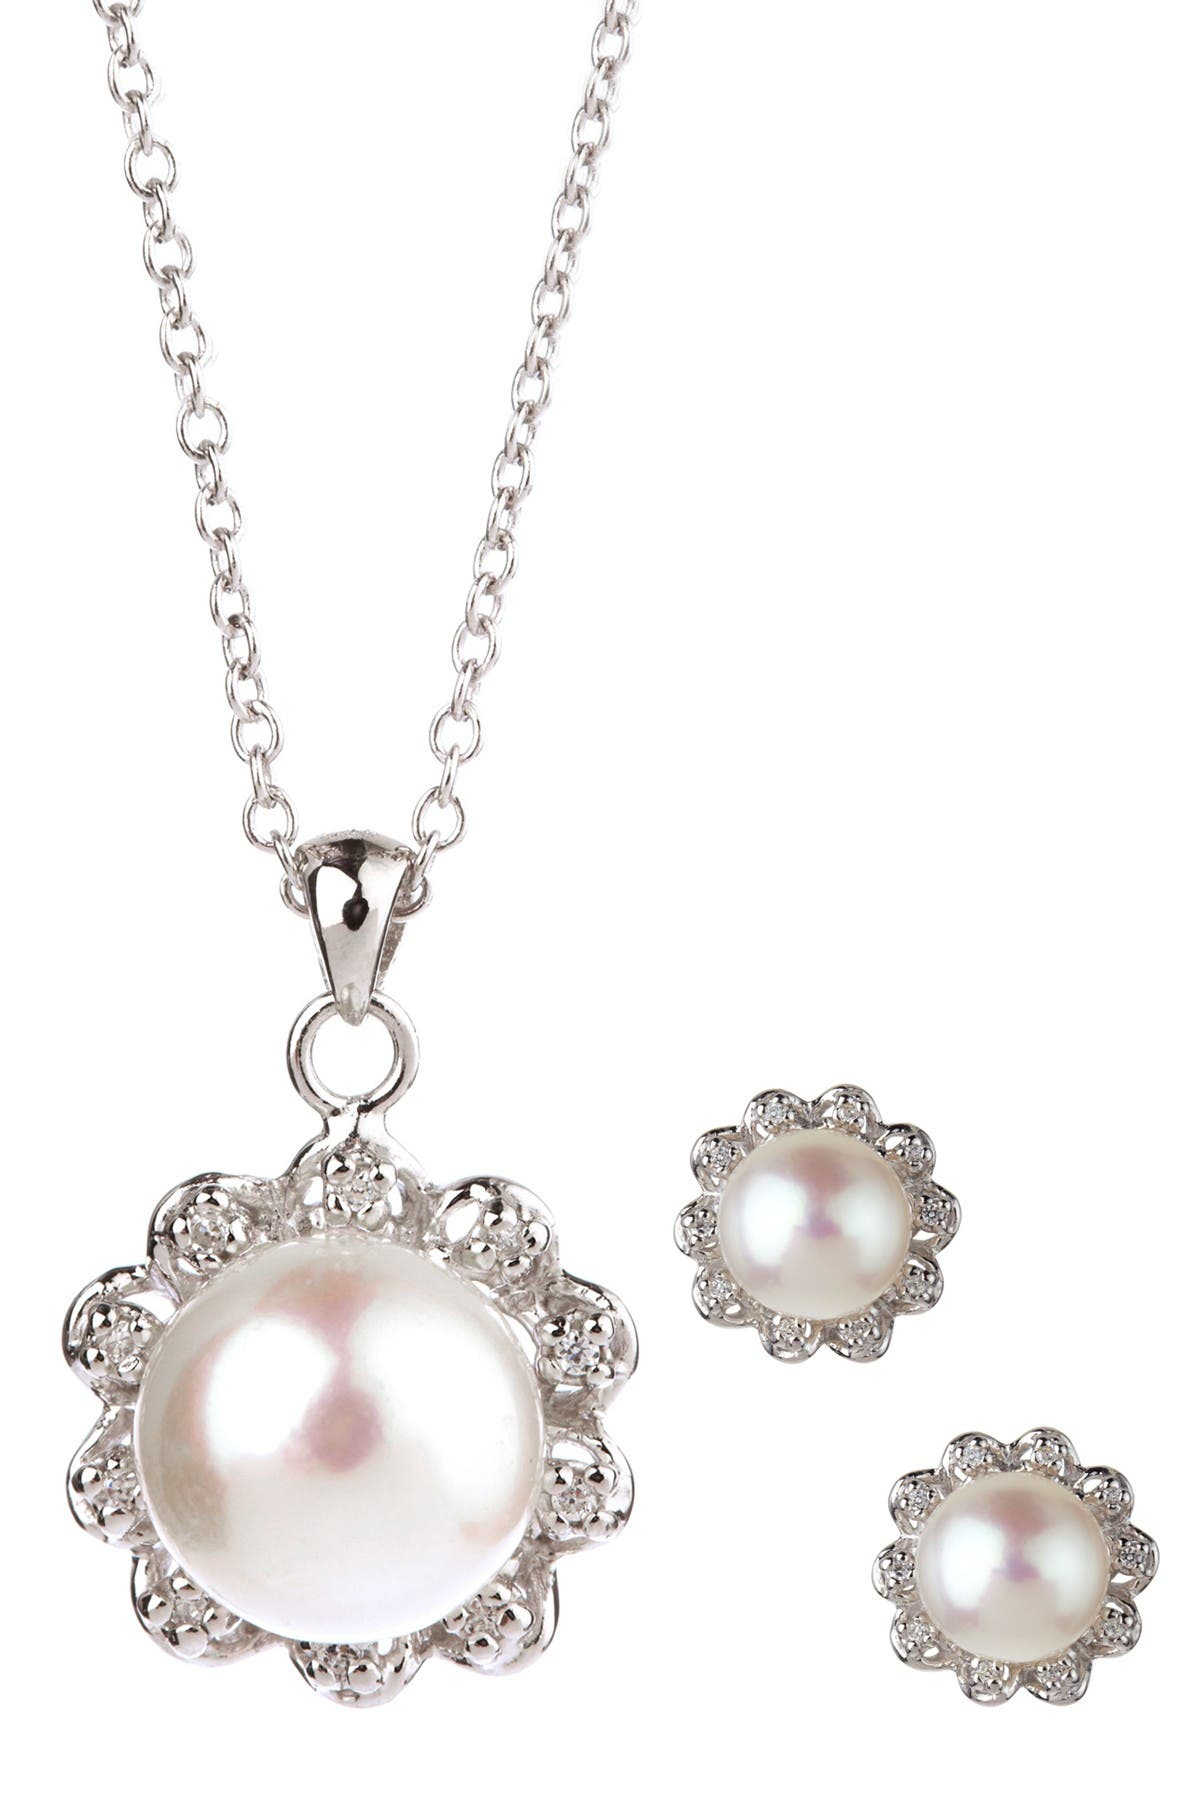 Image of Splendid Pearls 8-9mm White Freshwater Pearl Earrings & Necklace Set